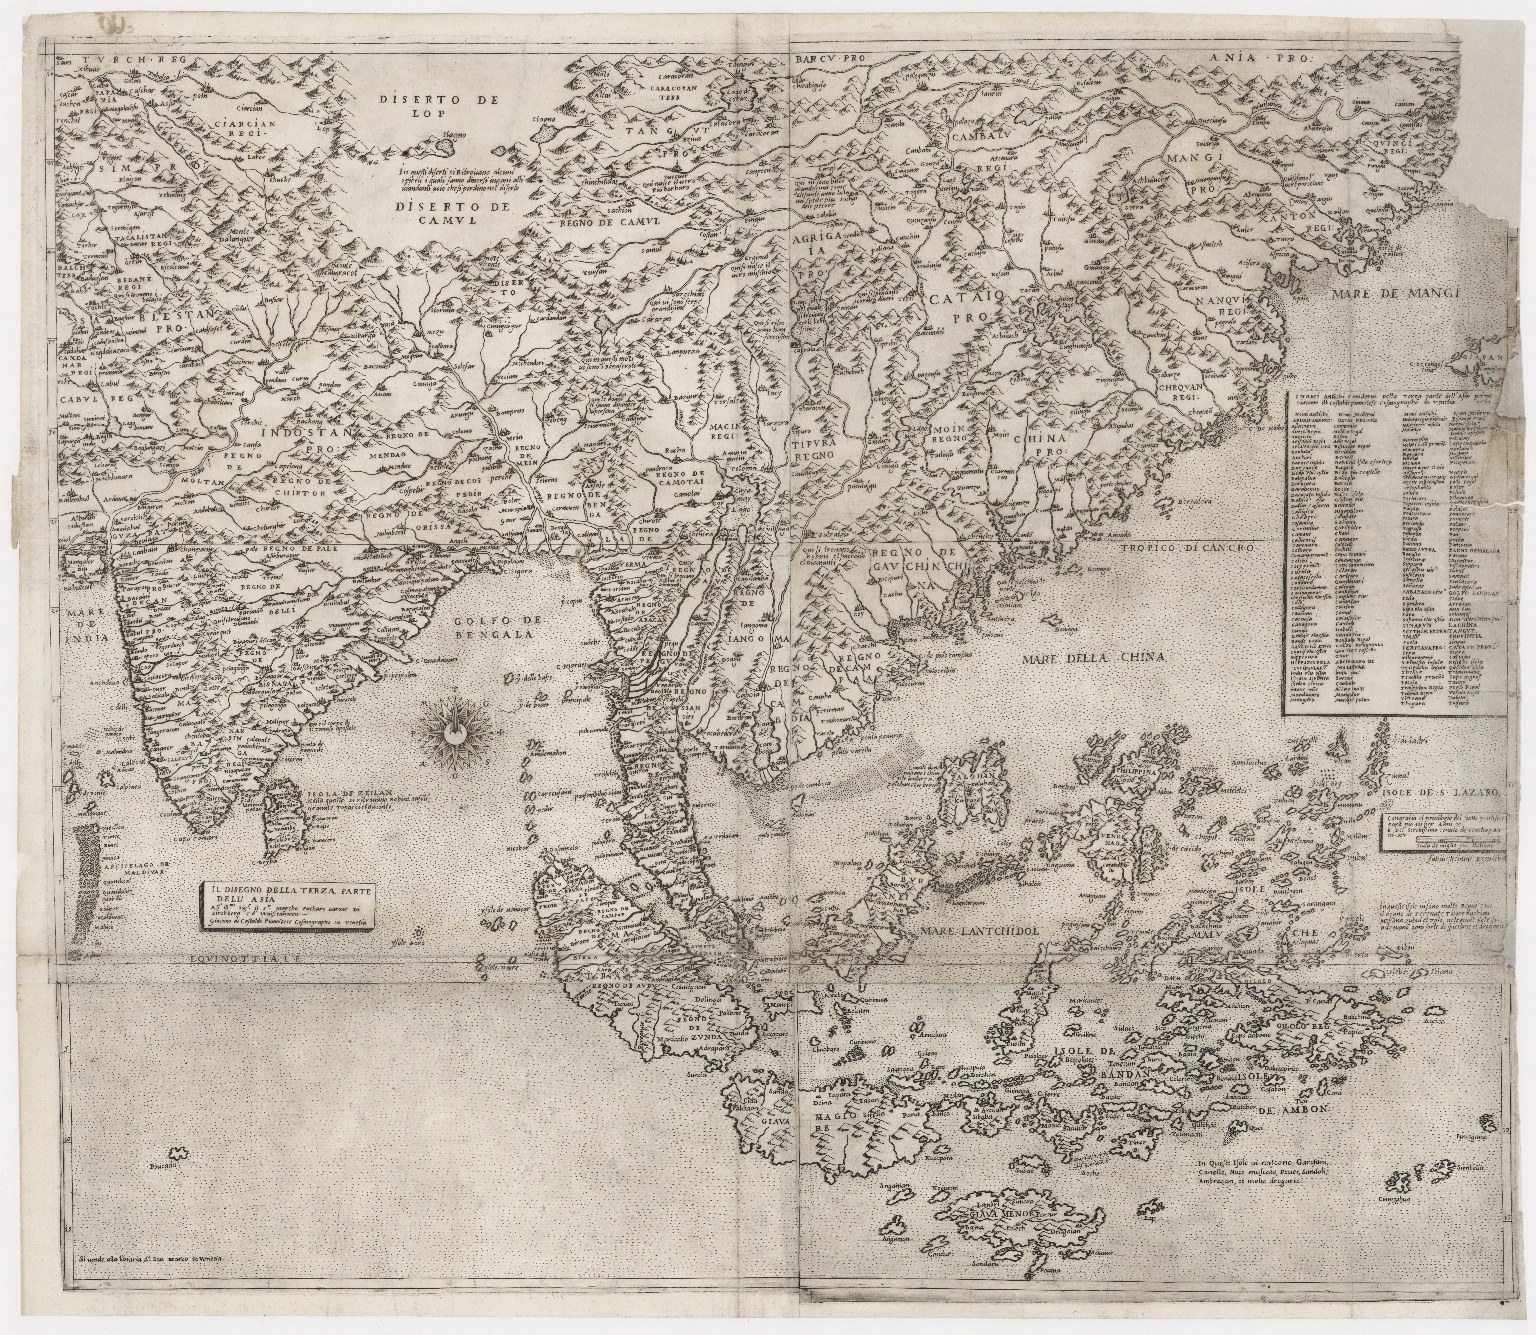 The Design of the Third Part of Asia